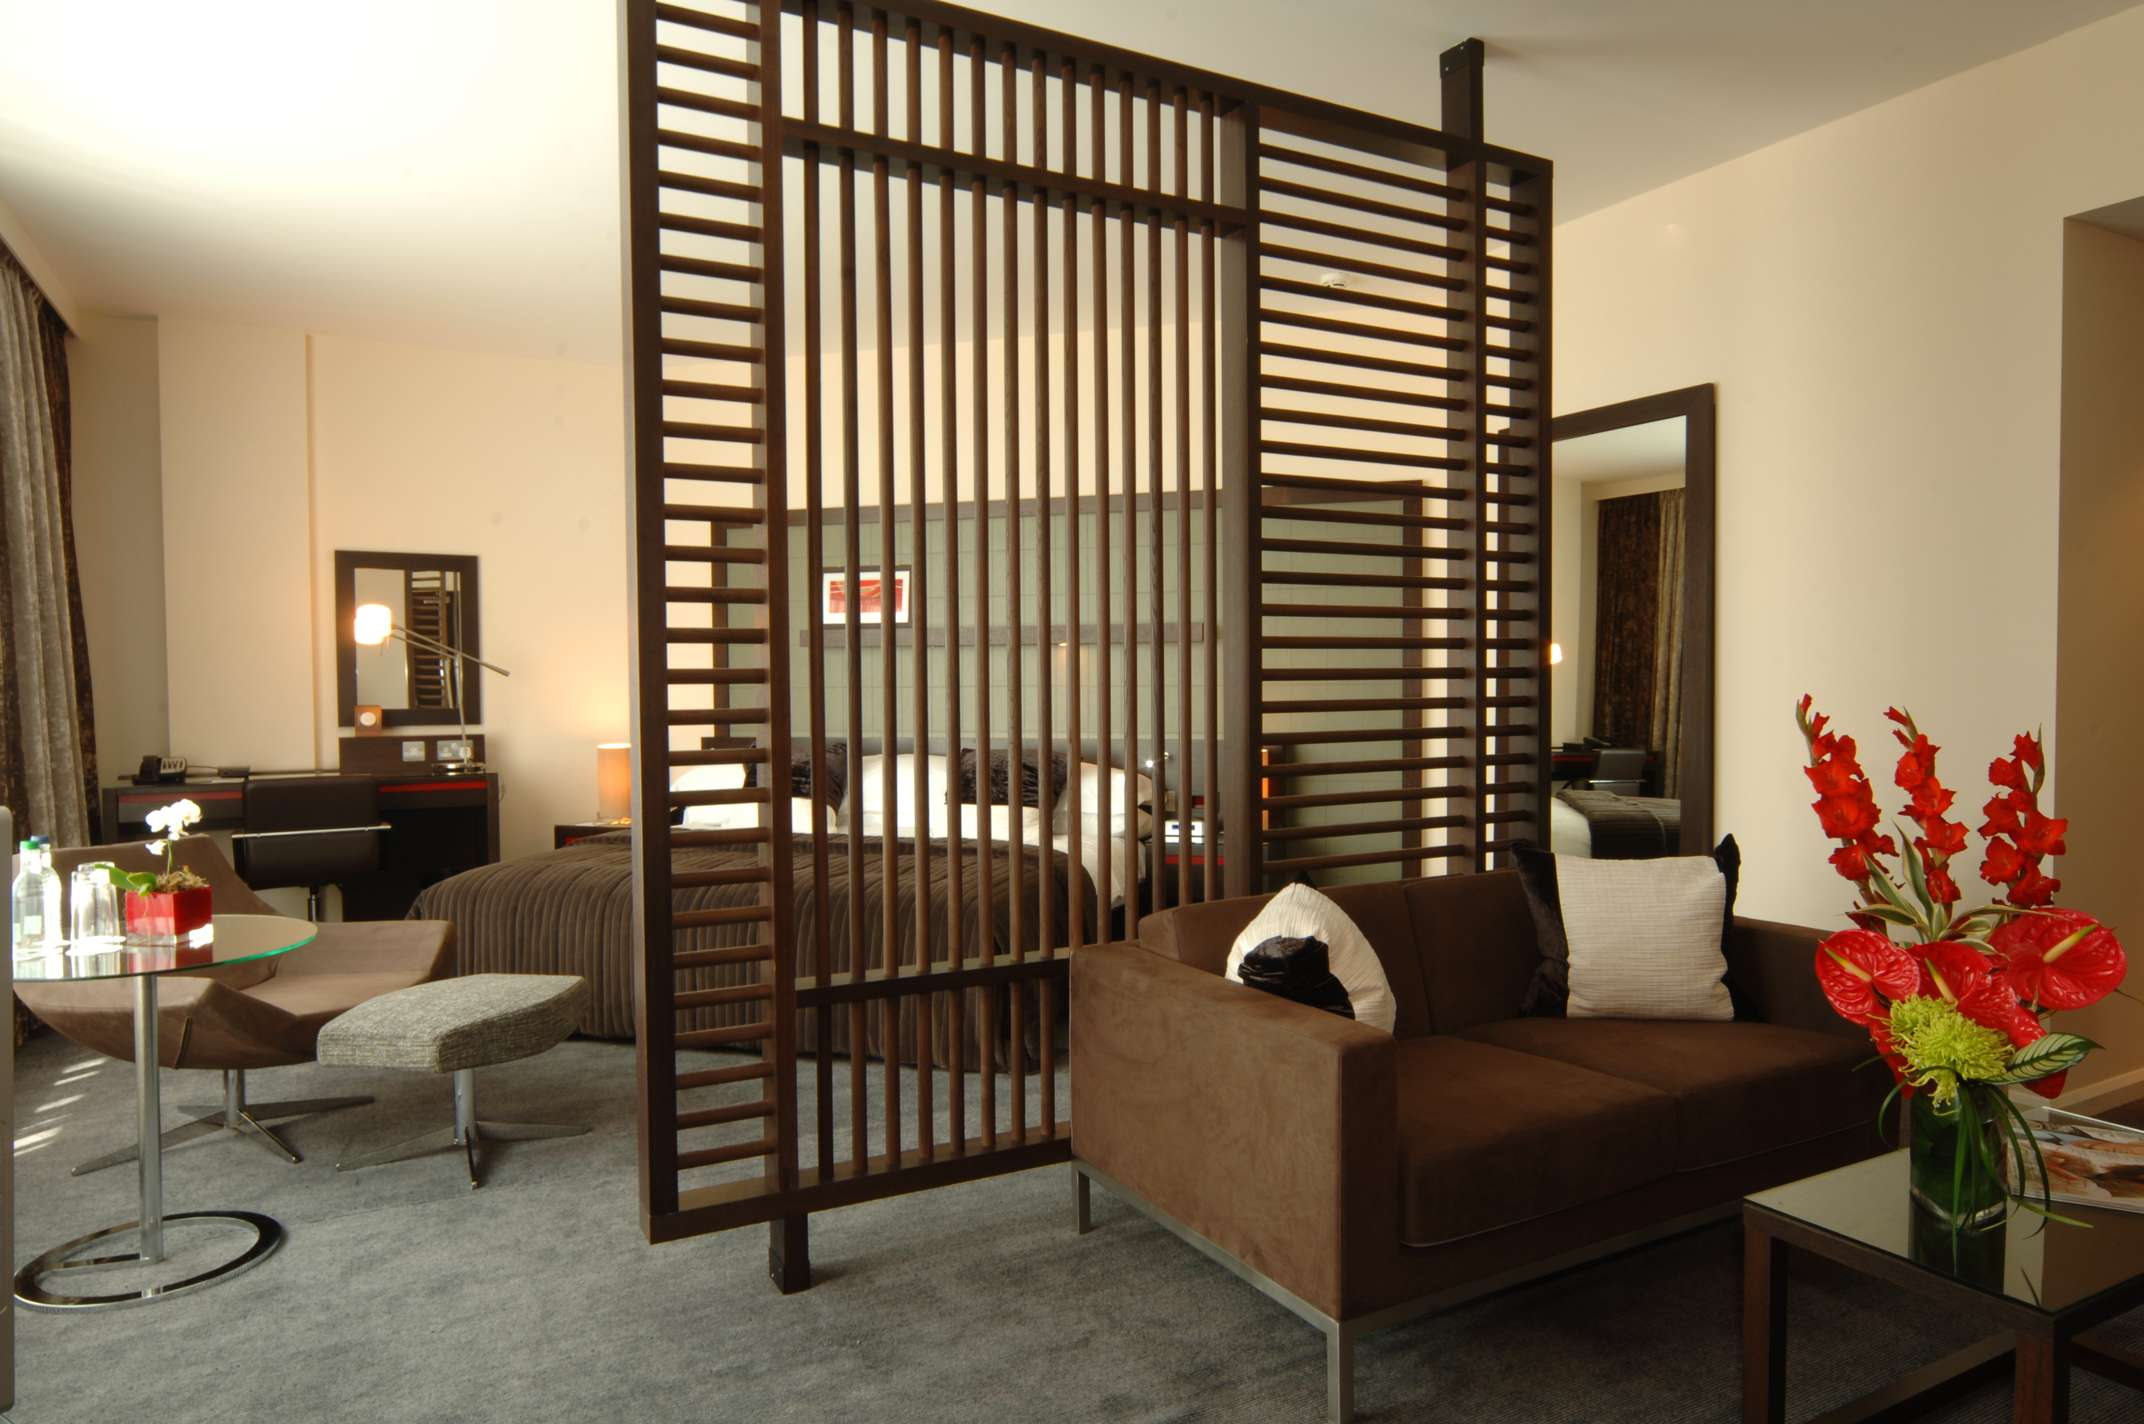 hilton london canary wharf london hotel opening times and. Black Bedroom Furniture Sets. Home Design Ideas